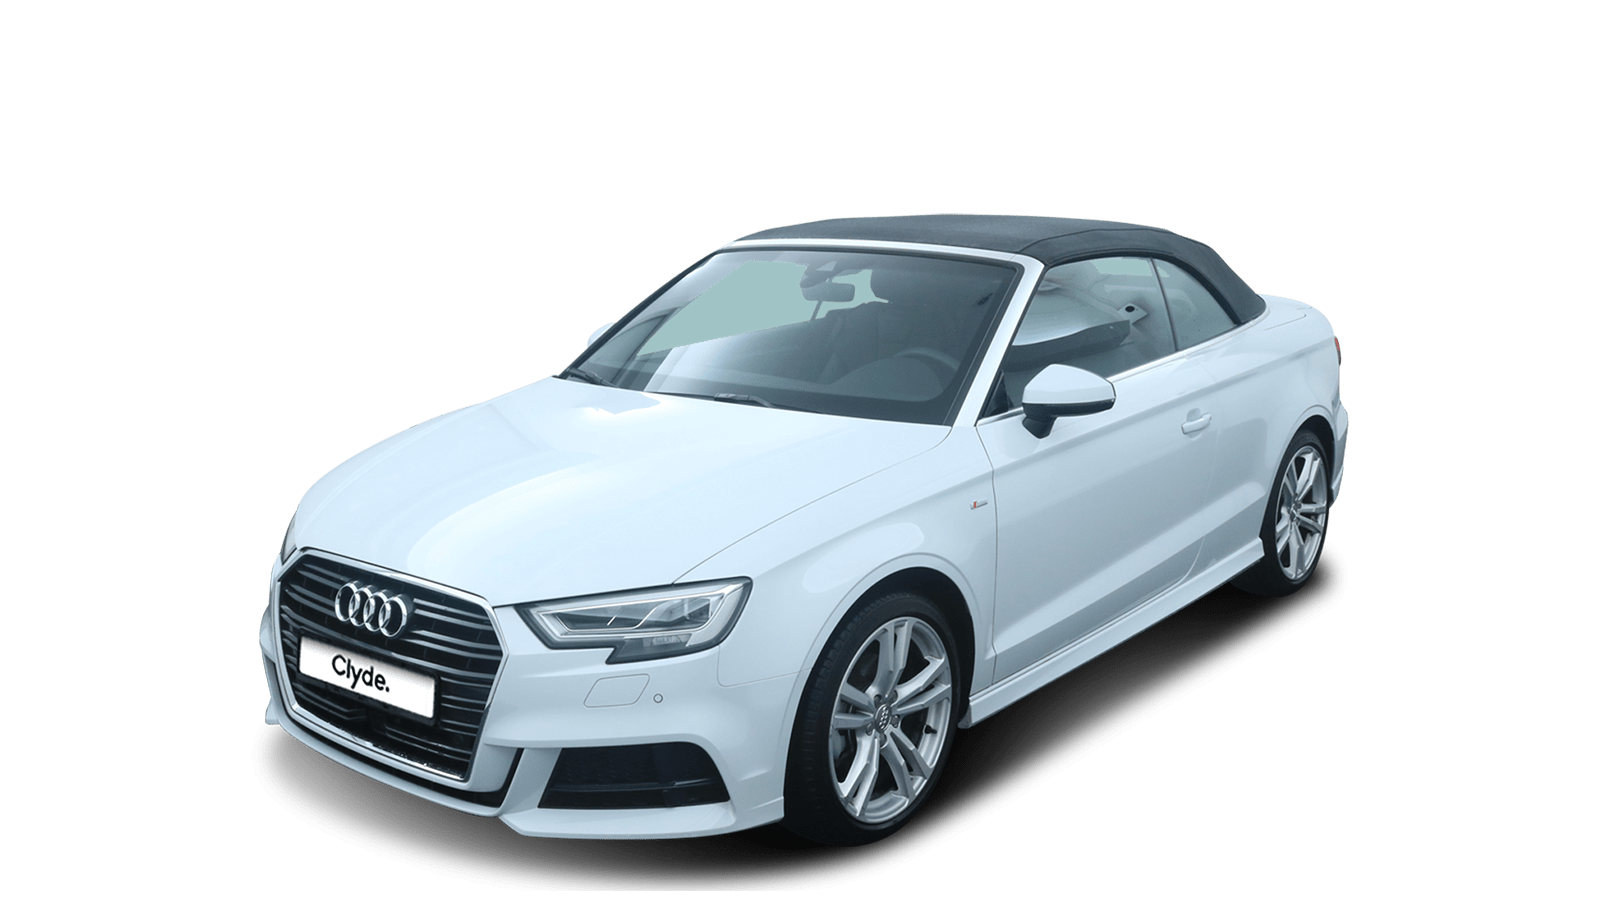 Audi A3 Cabriolet Weiss front - Clyde Auto-Abo